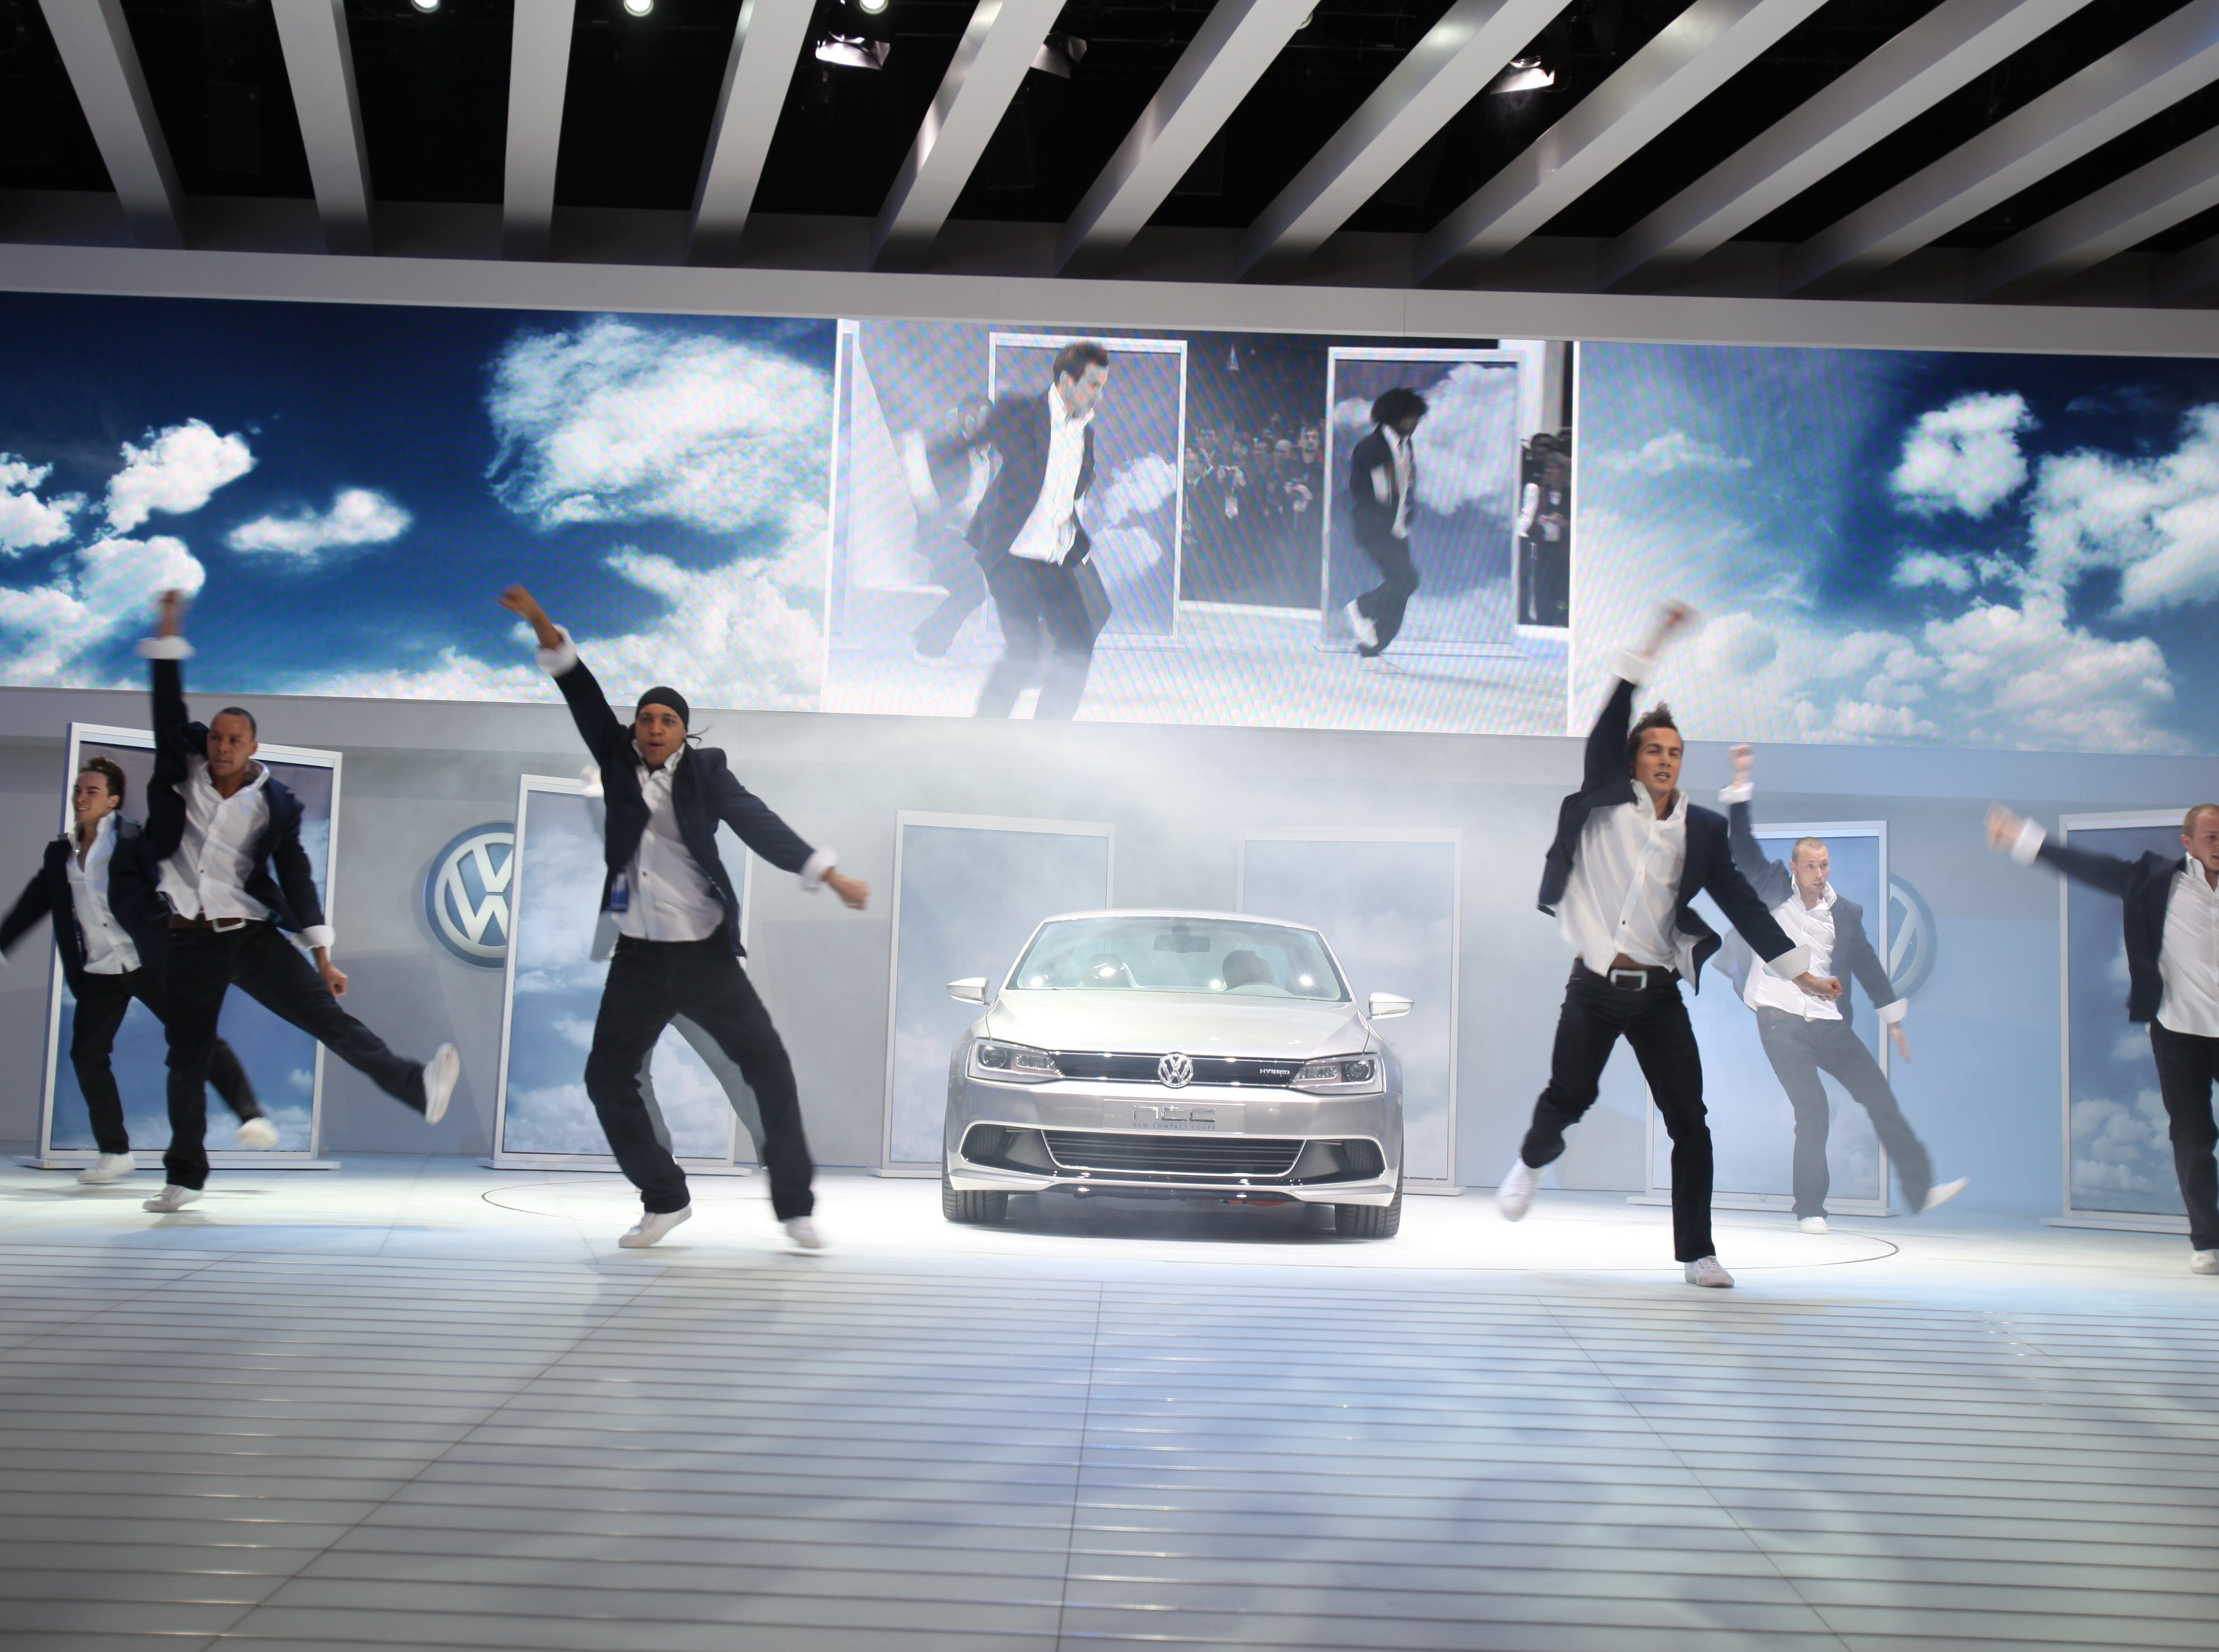 The Volkswagen hybrid concept coupe was introduced to the media at the North American International Auto Show, Monday, January 11 2010, at Cobo Hall in Detroit, MI.